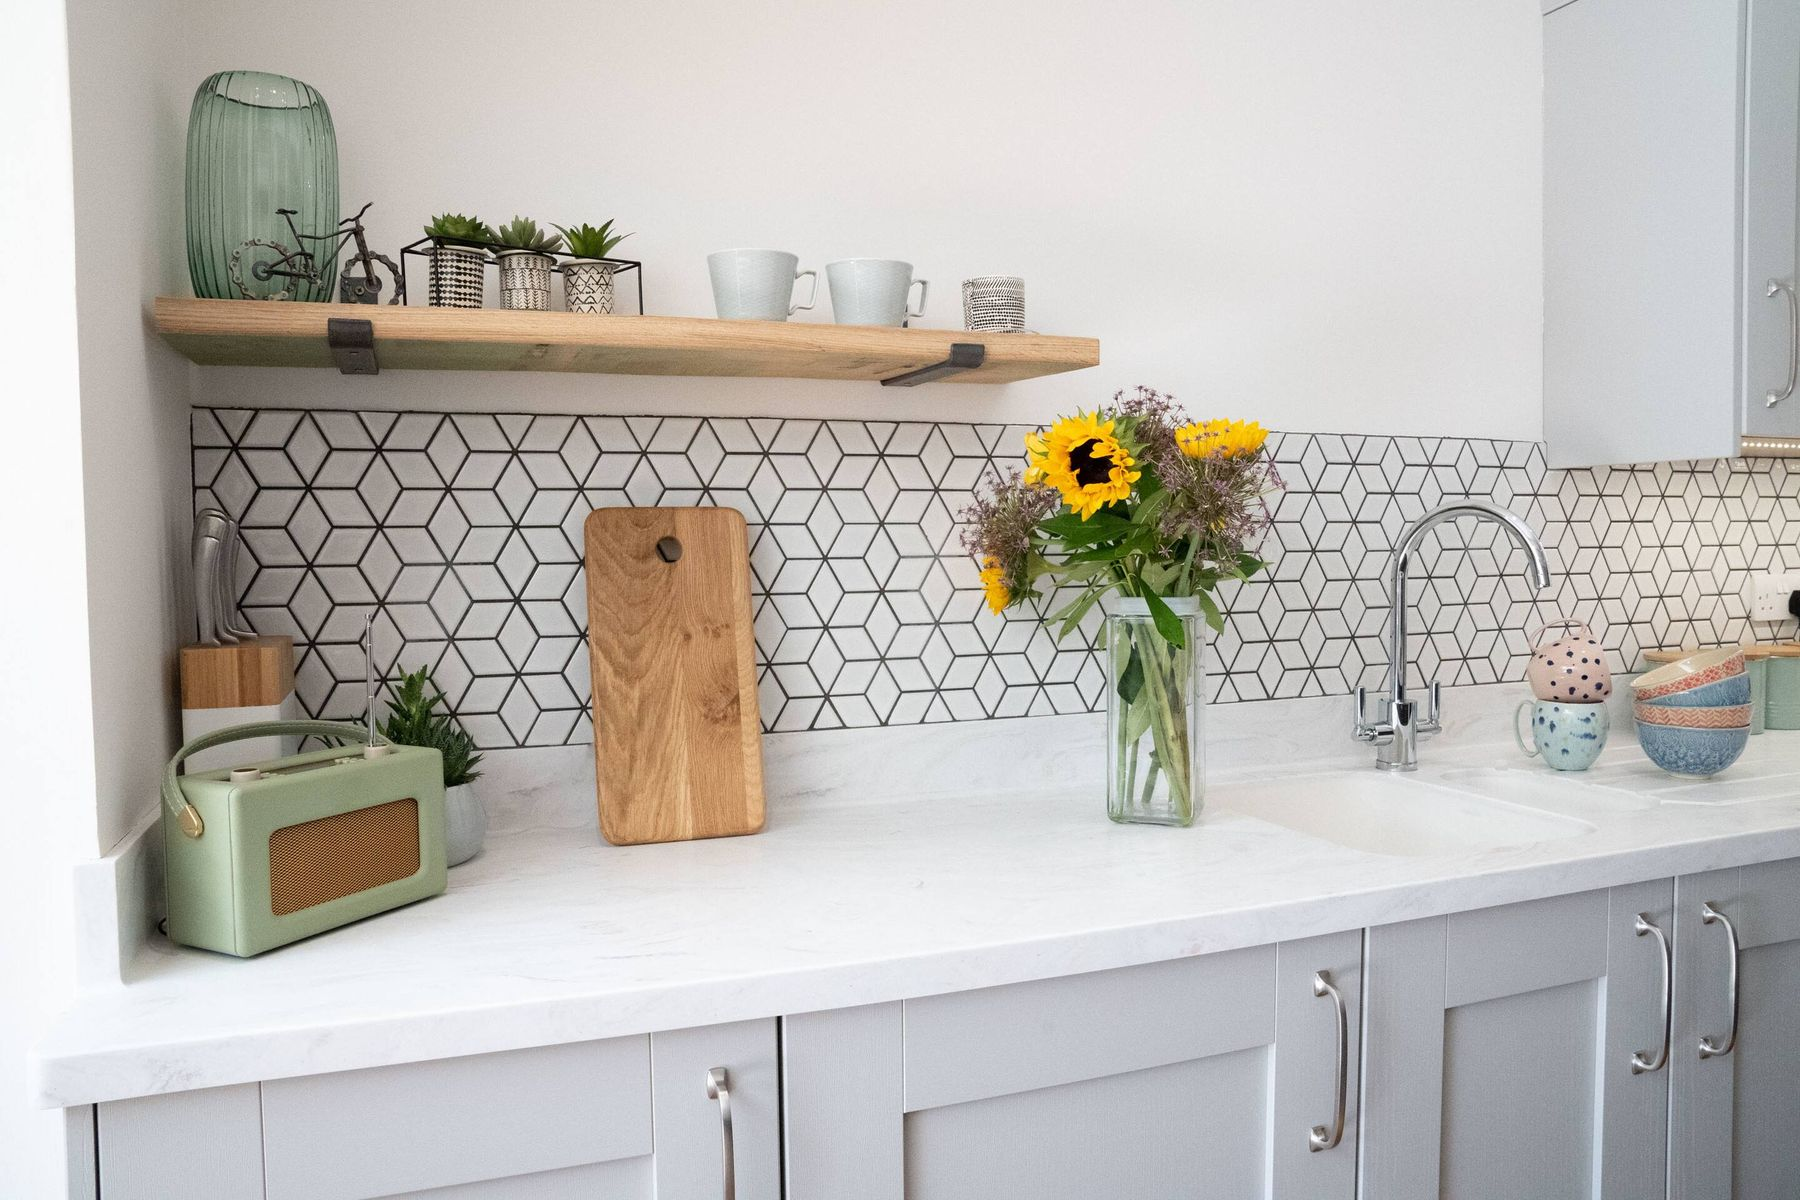 Kitchen counter with sink and flowers in vase